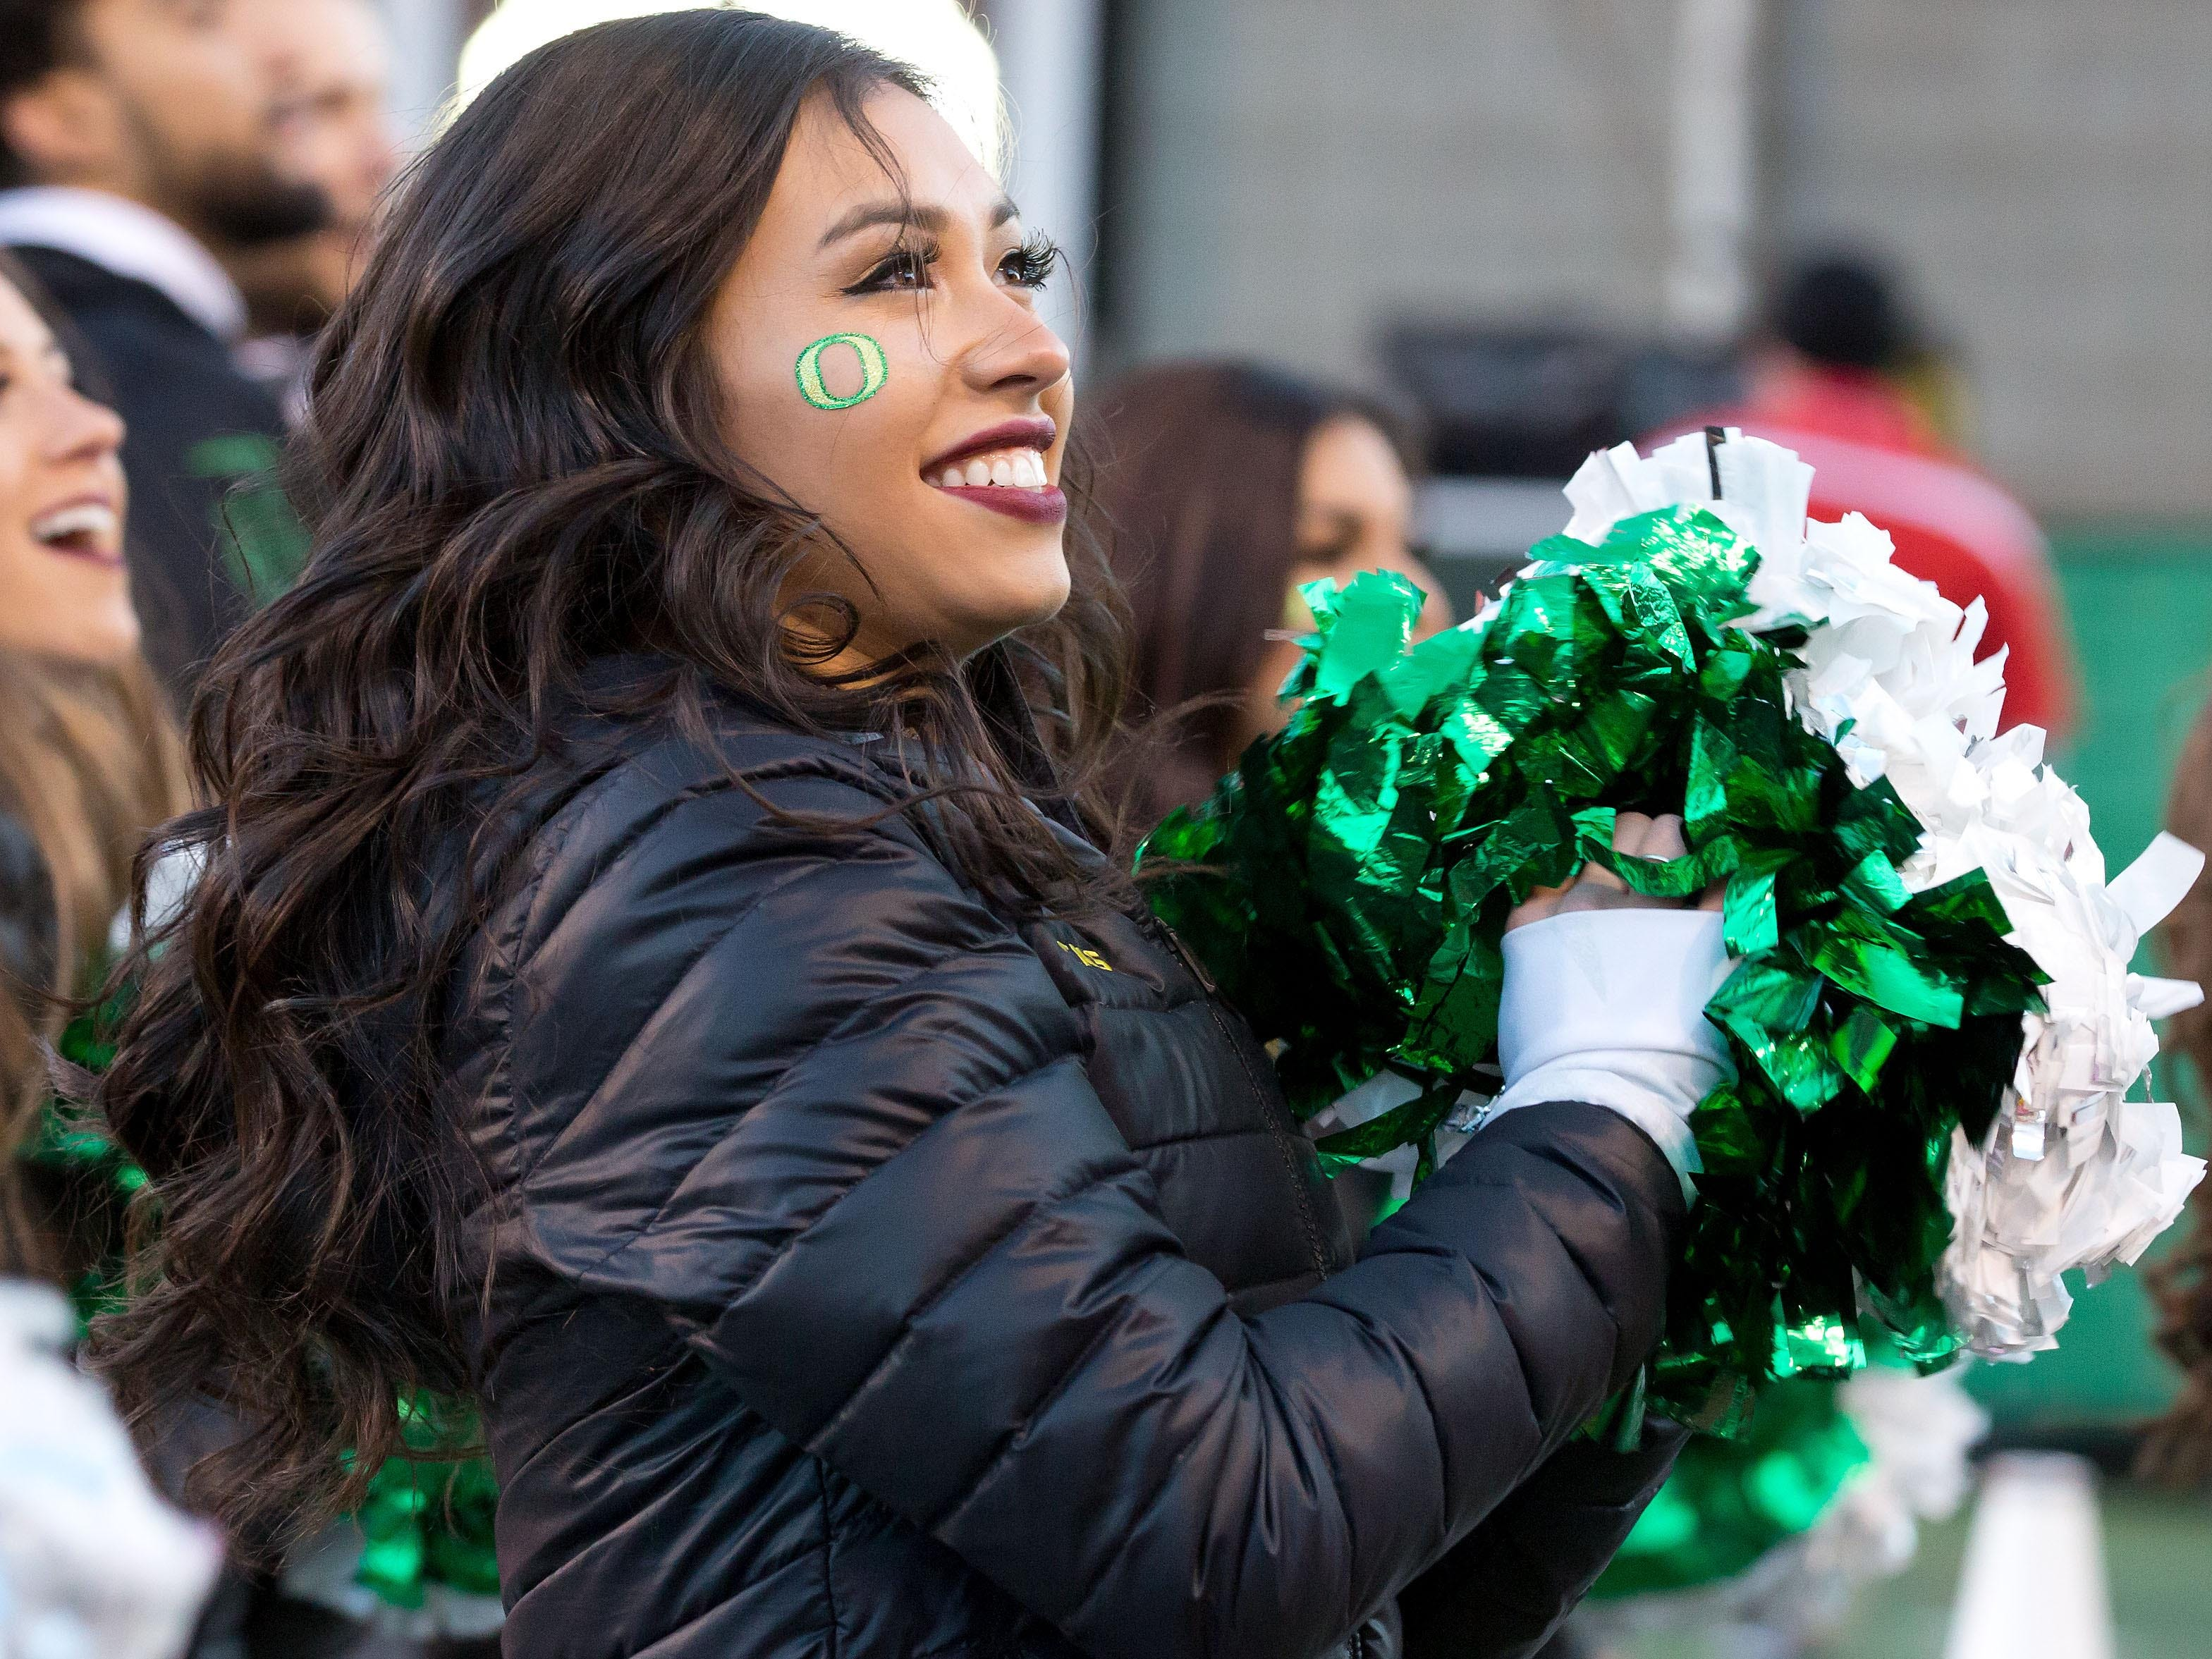 Week 11: An Oregon Ducks cheerleader performs during the first half against the Utah Utes at Rice-Eccles Stadium.